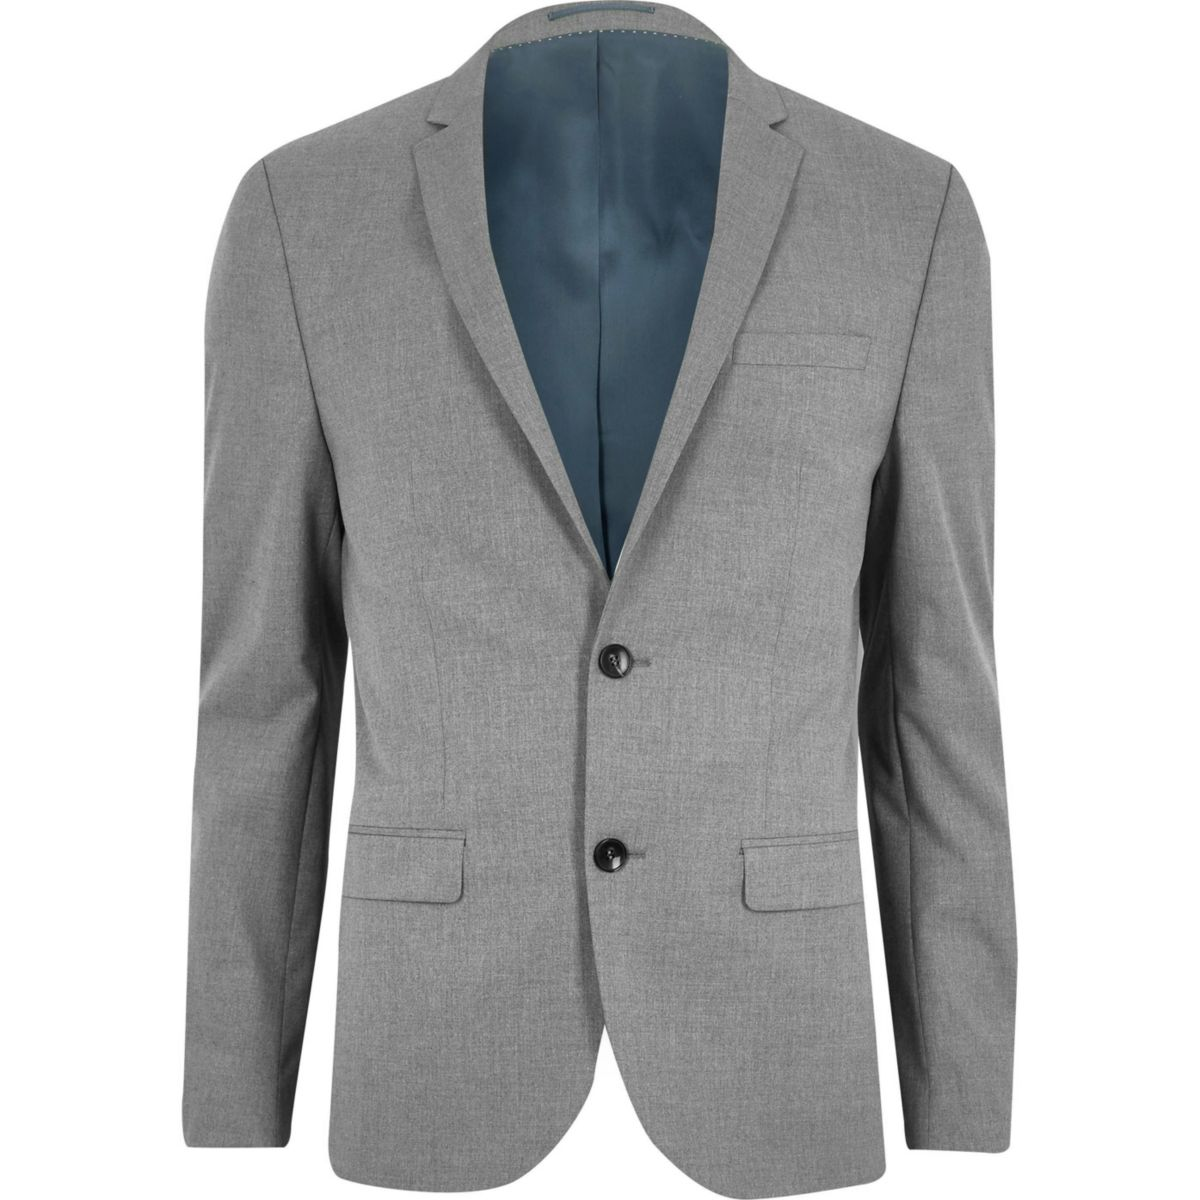 Light grey skinny fit suit jacket - Suit Jackets - Suits - men